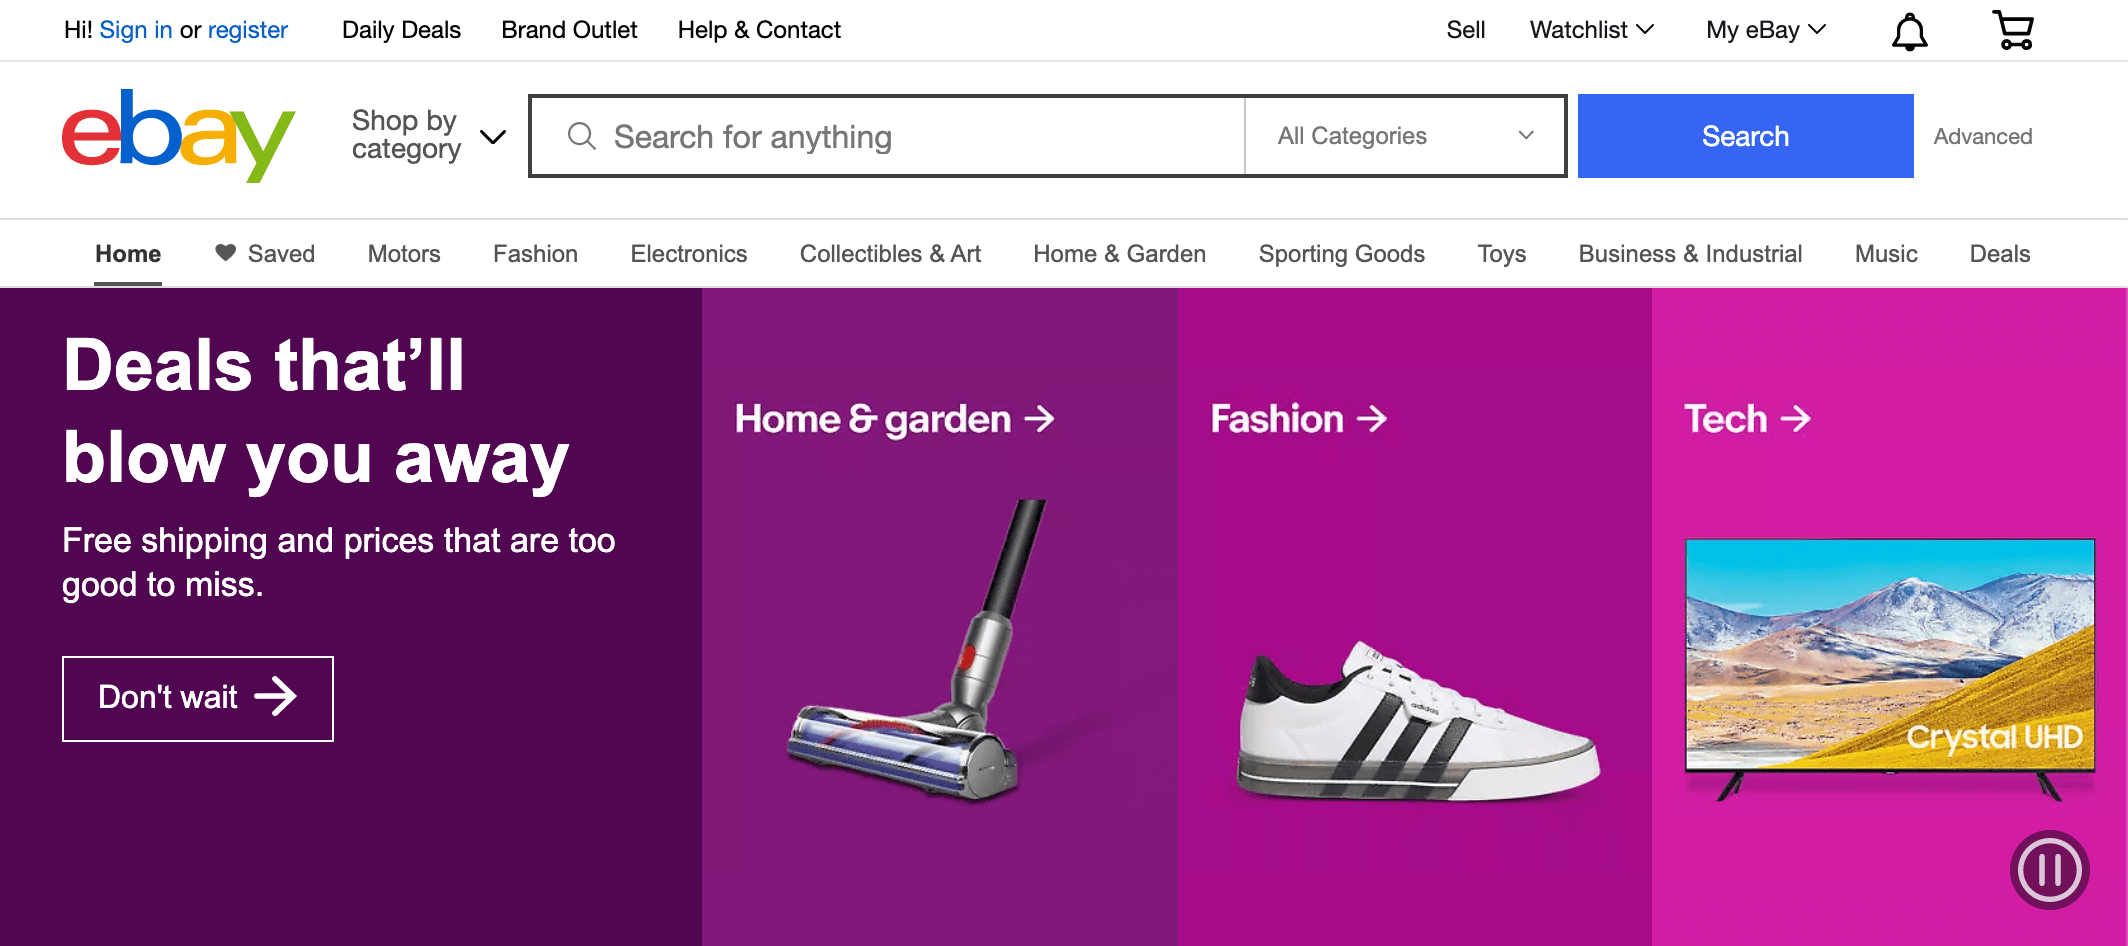 screenshot of ebay website